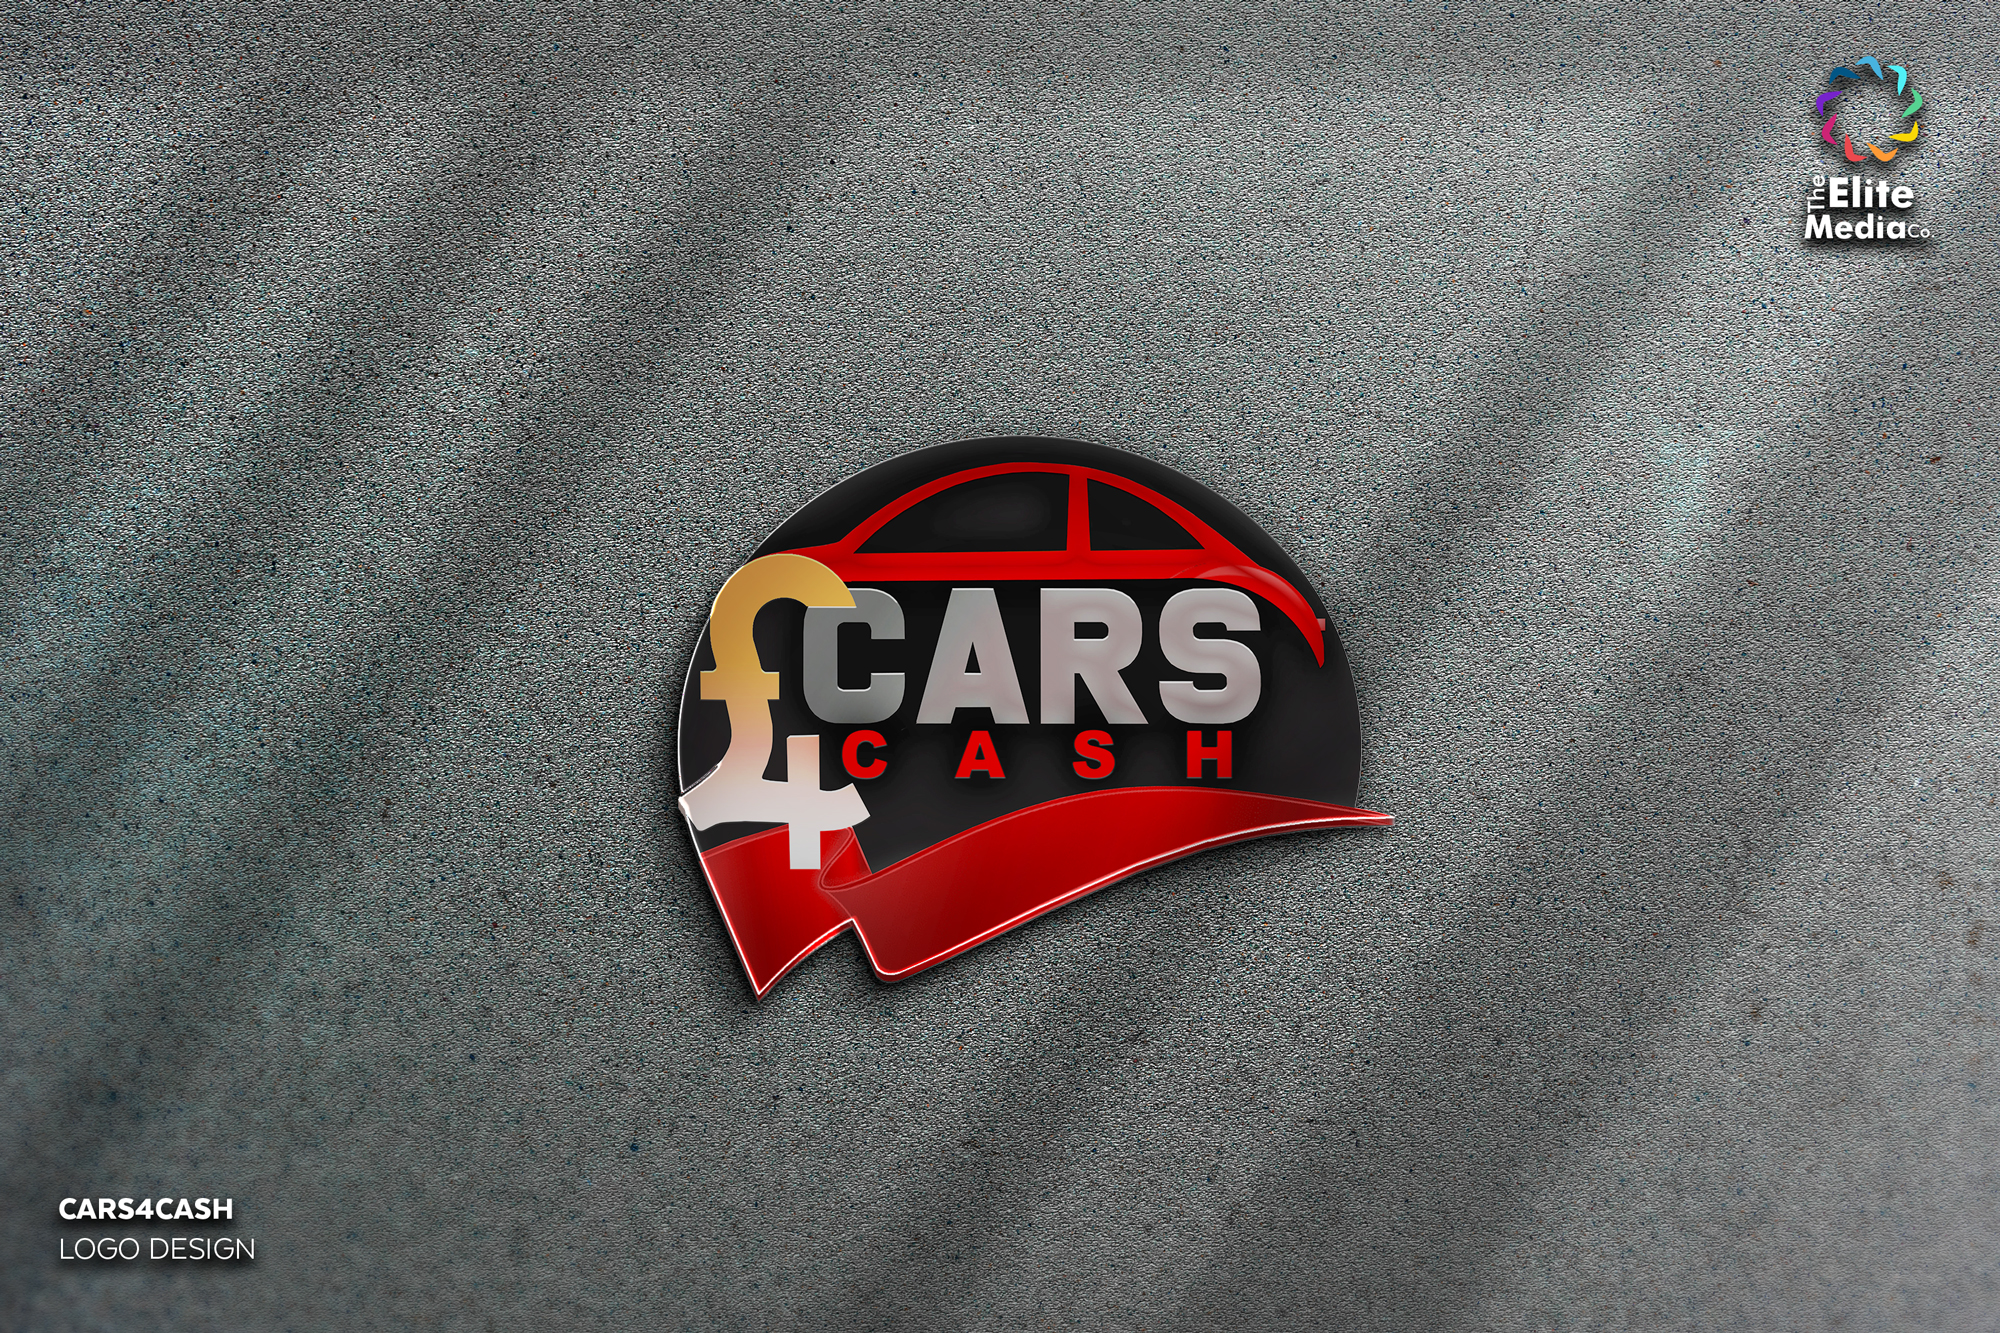 Cars4Cash – Logo